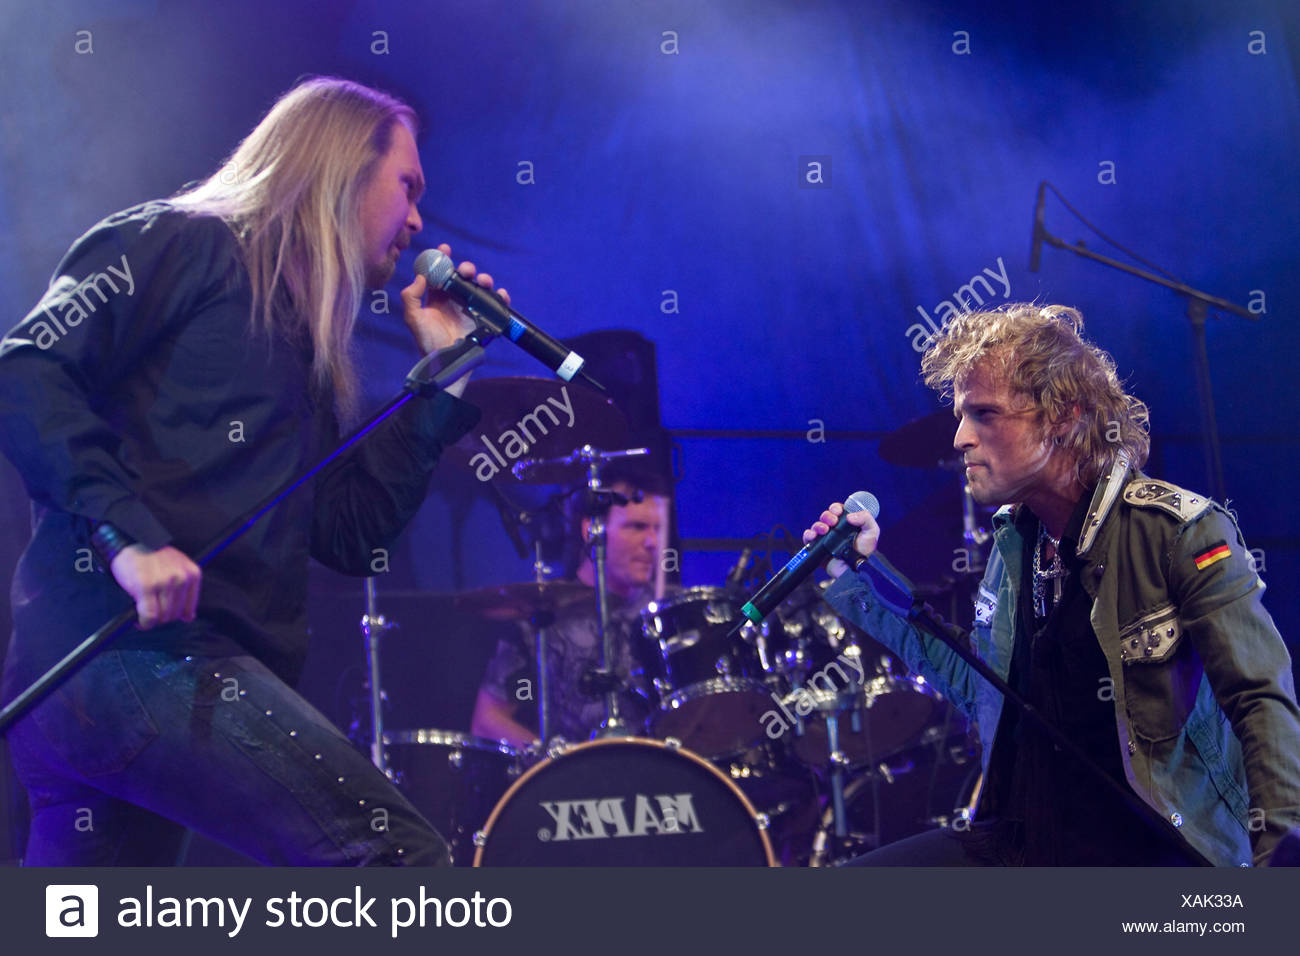 Tobias Sammet, singer and frontman, and Jorn Lande, ex-Masterplan, of the German power-metal band Avantasia, performing live at - Stock Image